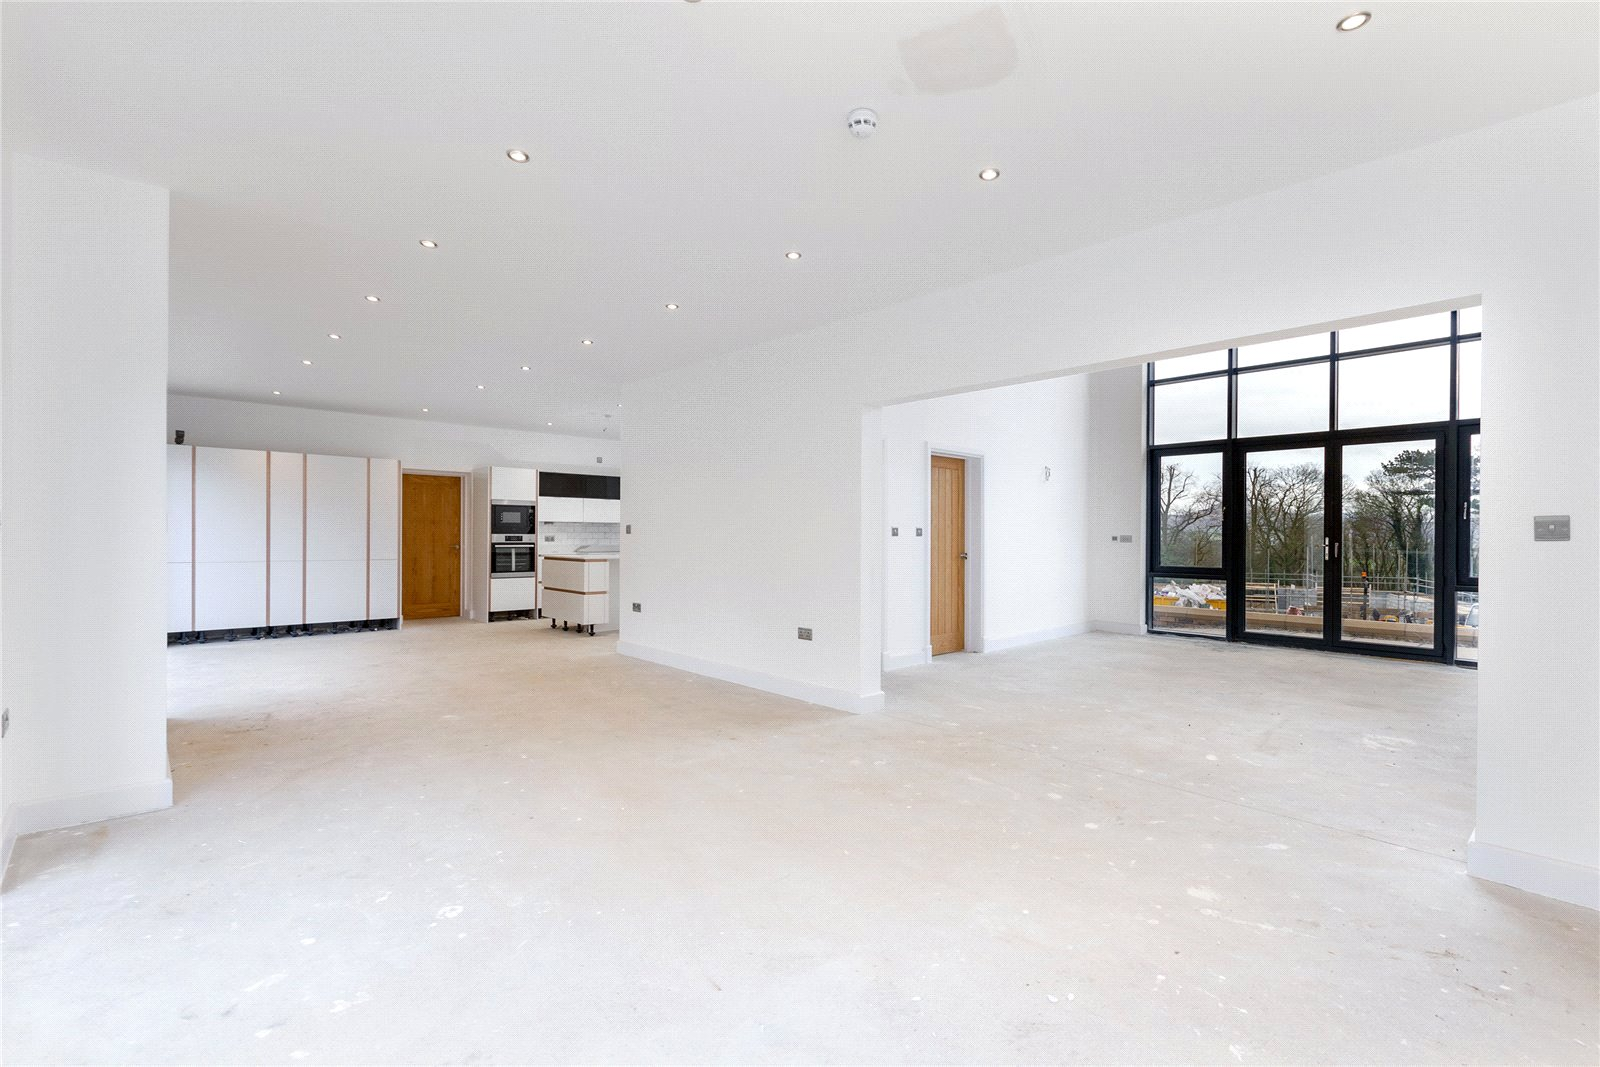 5 bed house for sale in Upsall Grange Gardens, Upsall  - Property Image 3